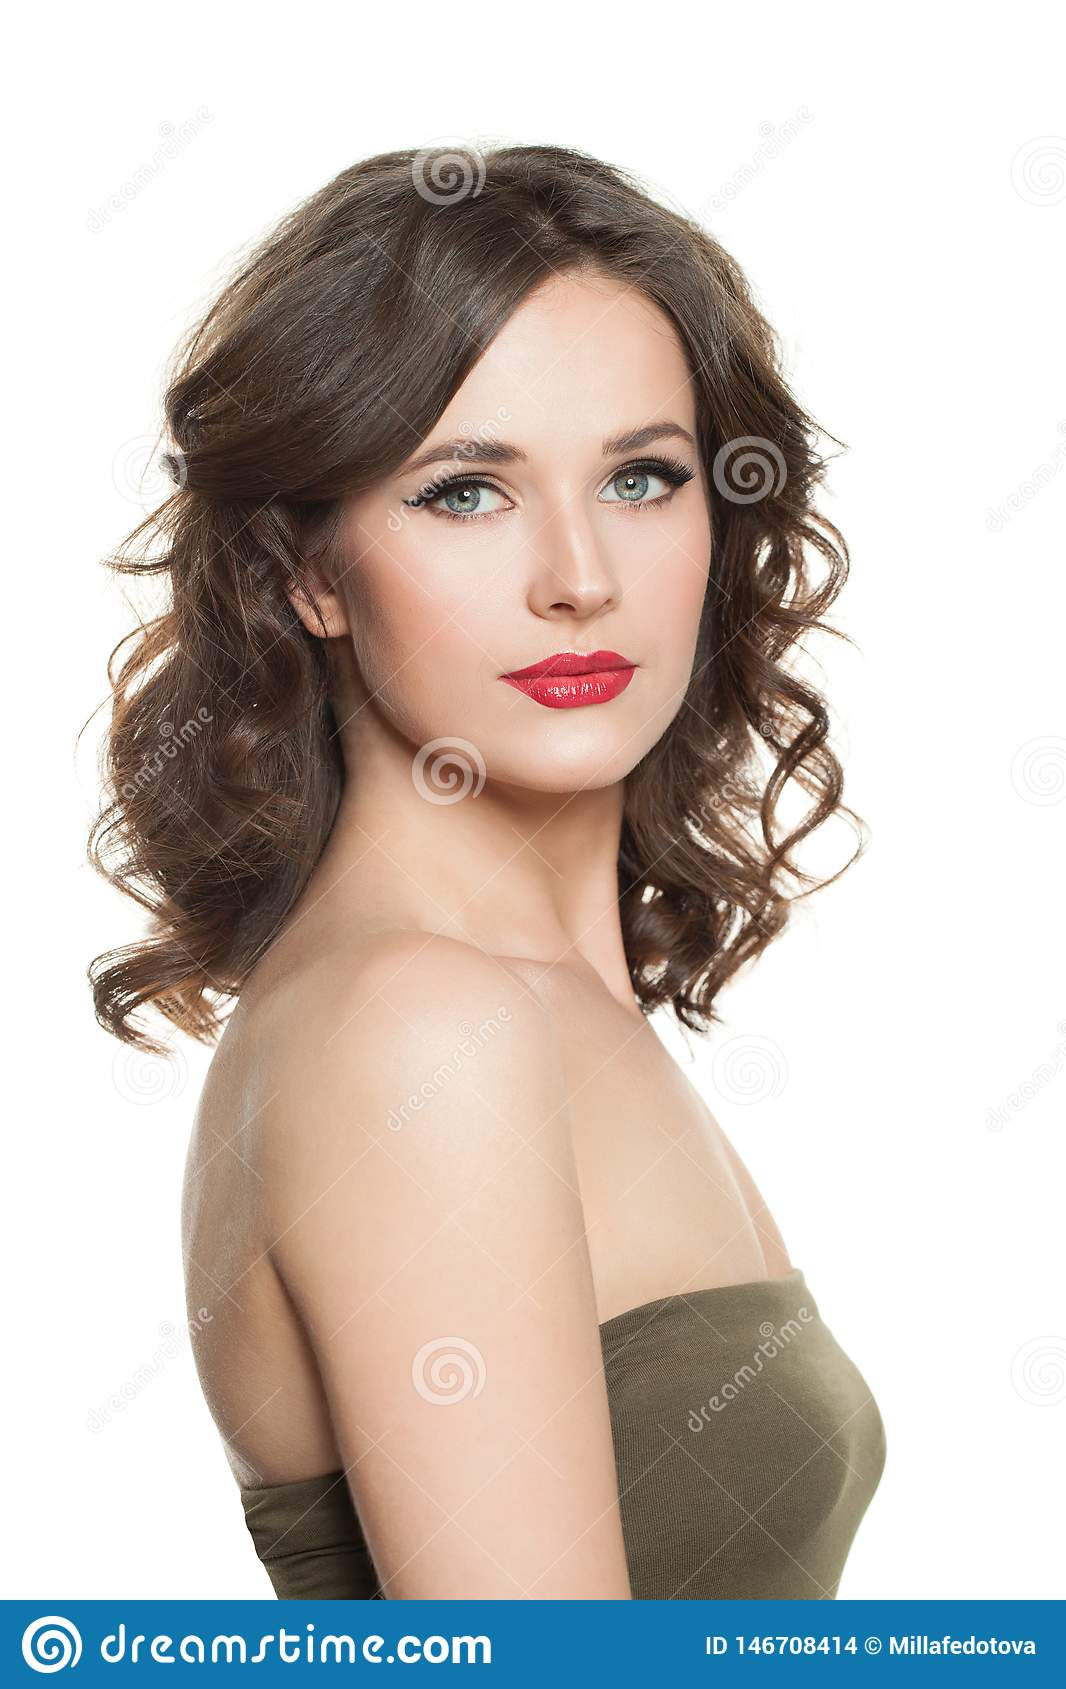 Cute Brunette Woman With Perfect Curly Hair And Makeup Isolated On